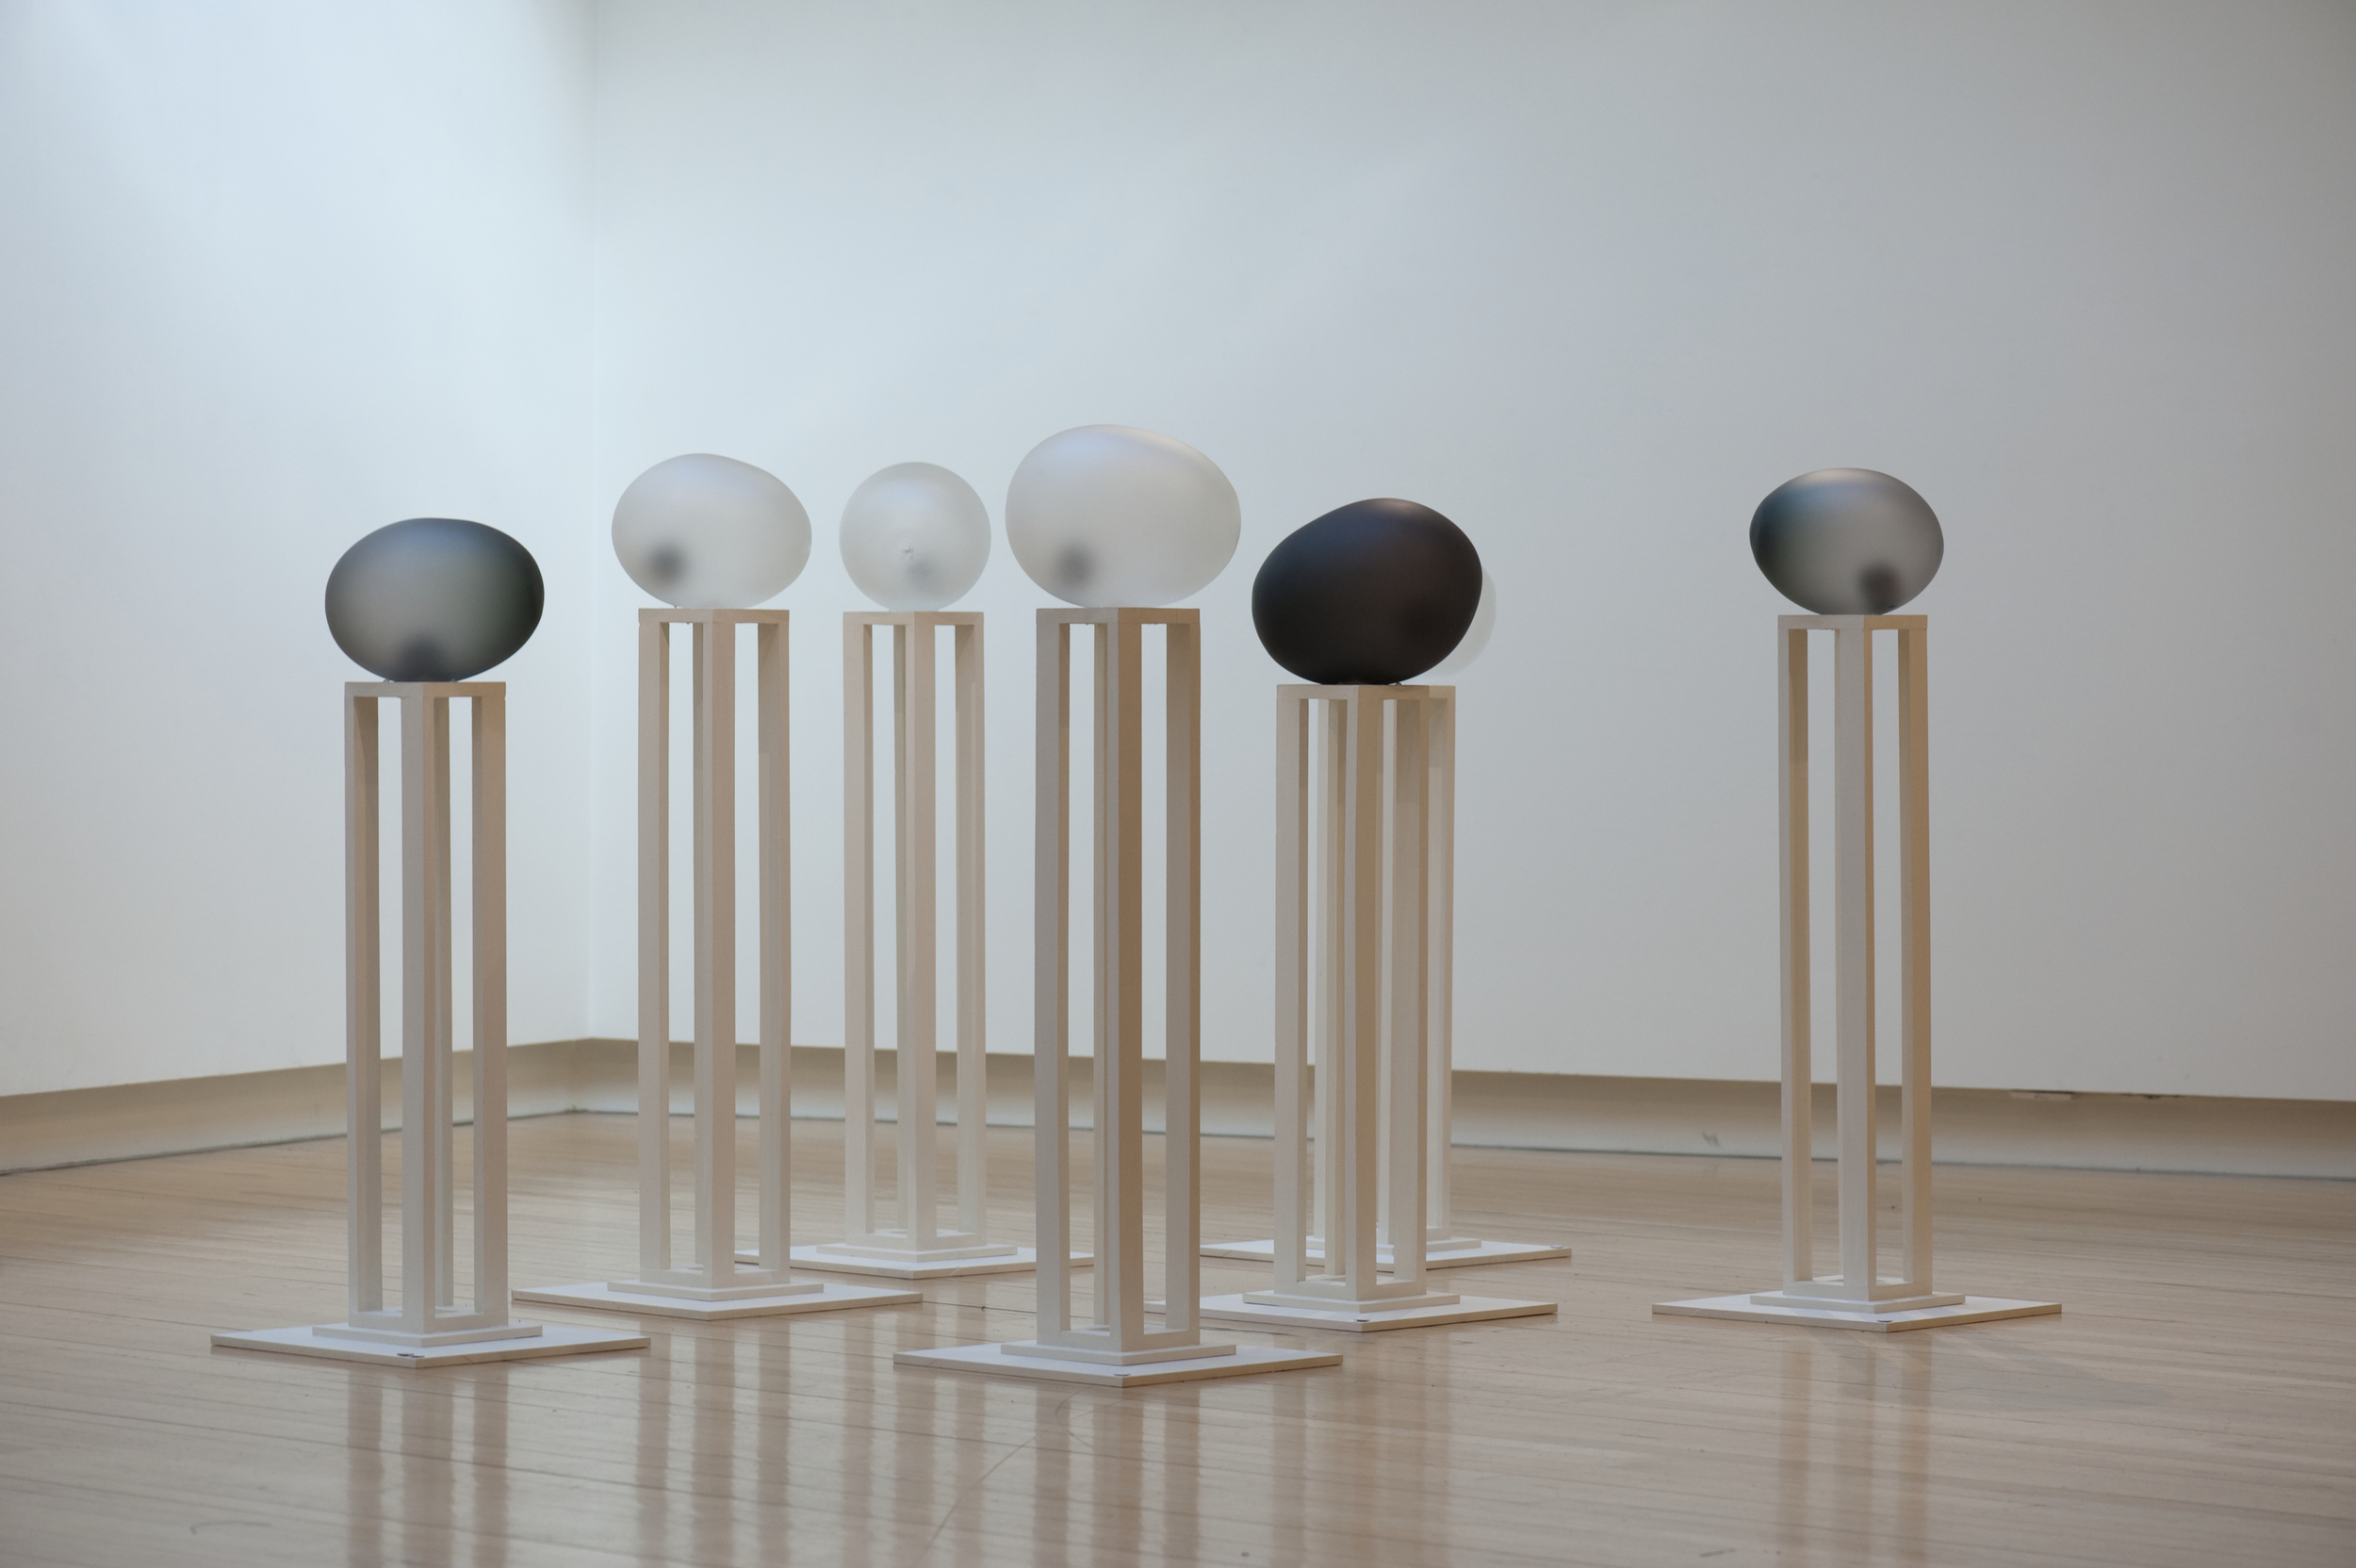 Installed at Light Square Gallery in 2008. Image by Steve Wilson